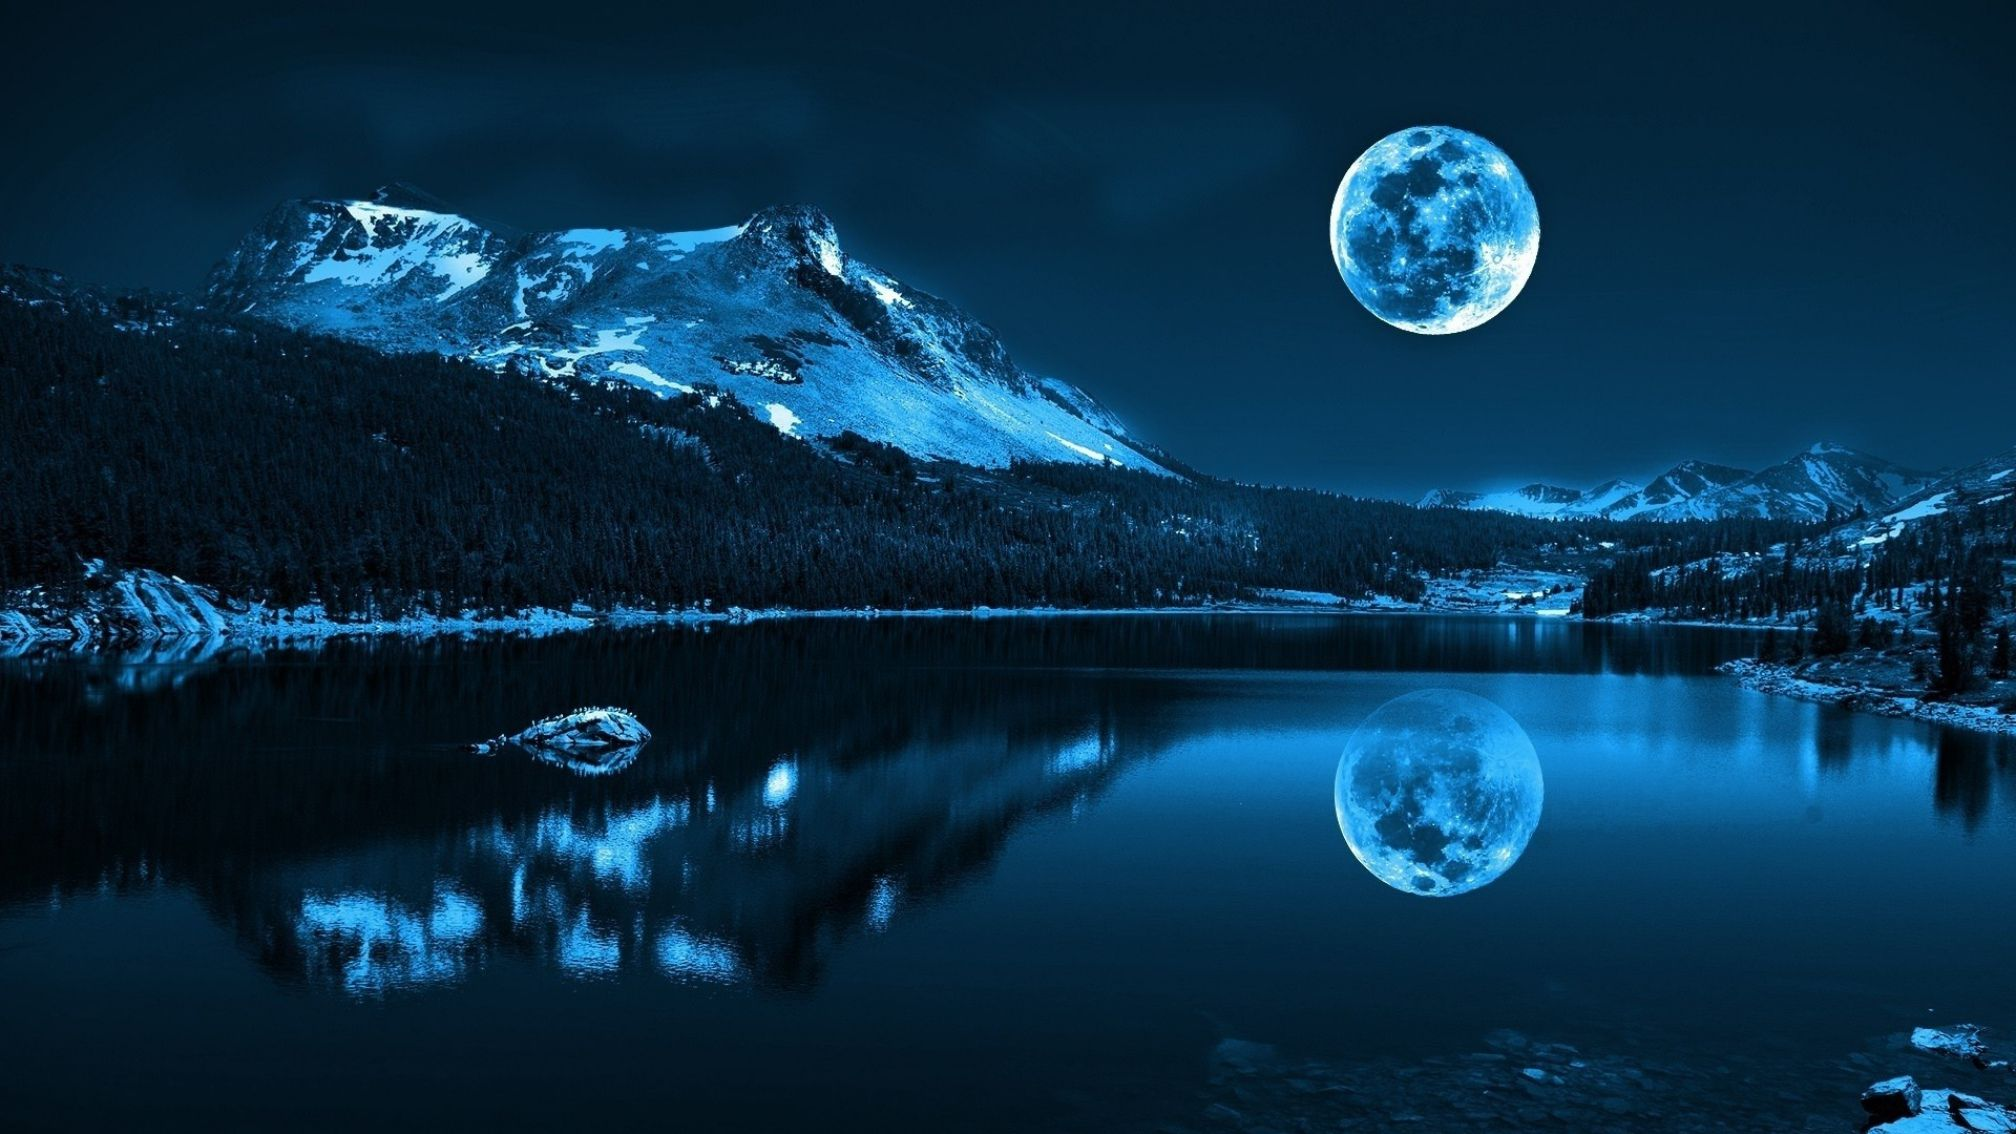 Image for 3D Wallpaper Of Lake And Moon Wallpaper Backgrounds HD 2016x1134